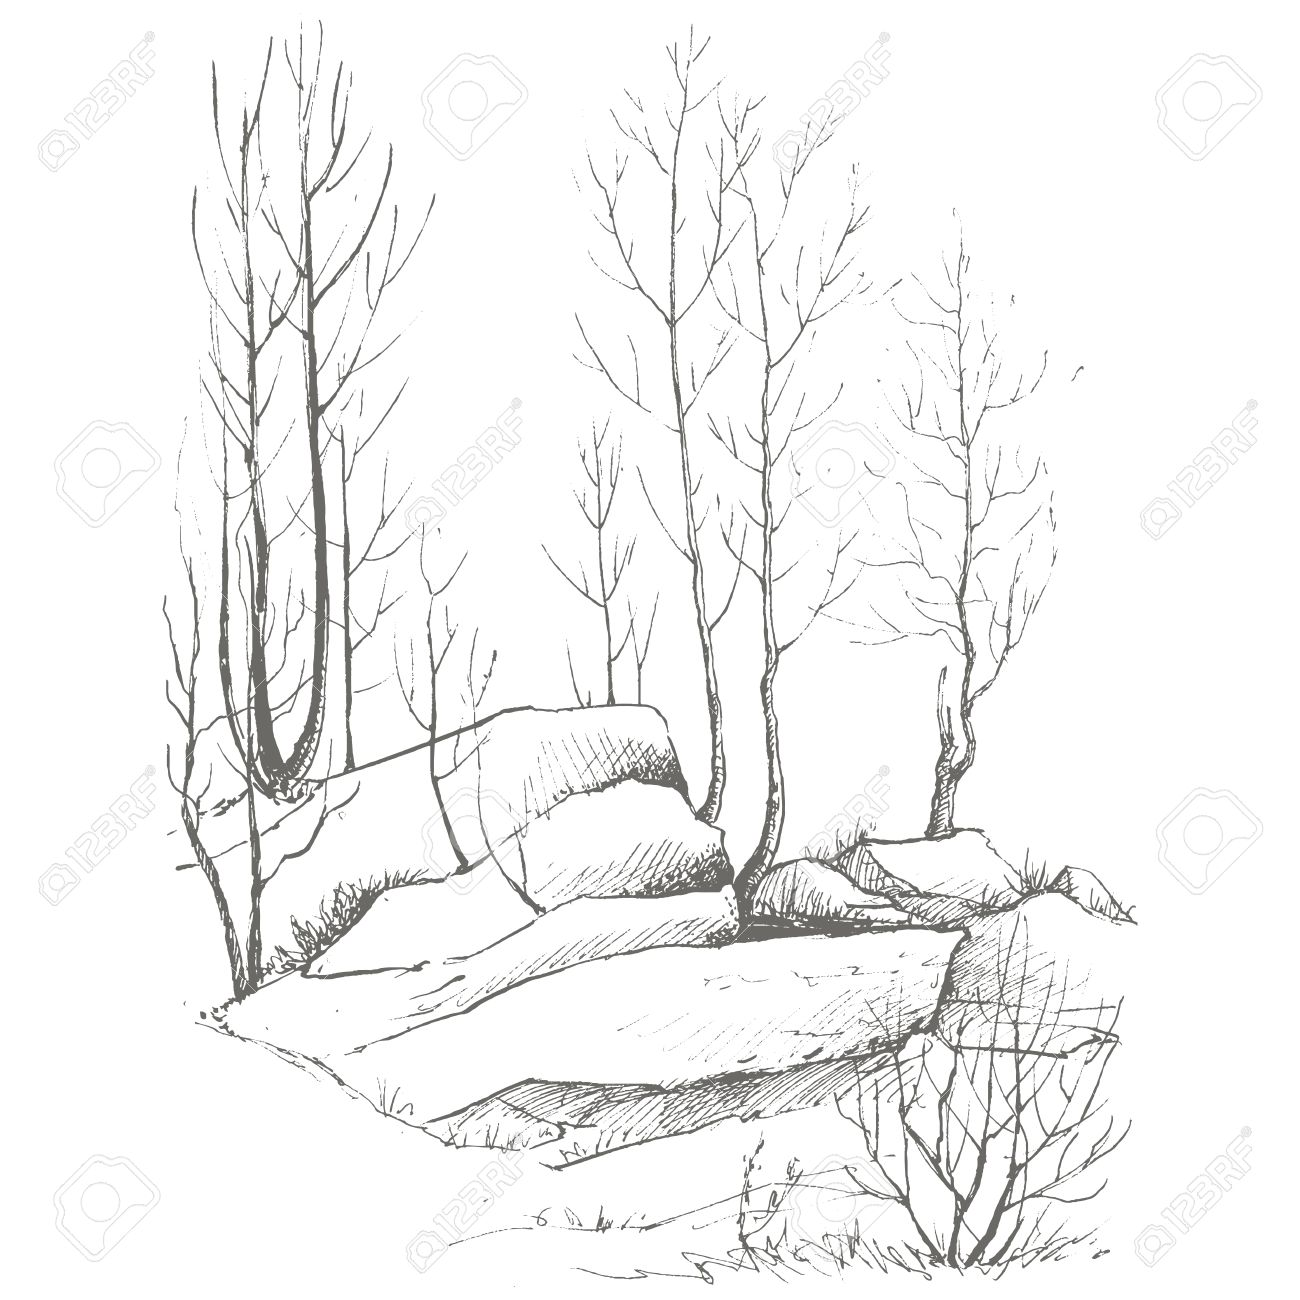 1300x1300 Young Birch Trees, Bushes And Rocks Drawing By Ink, Sketch